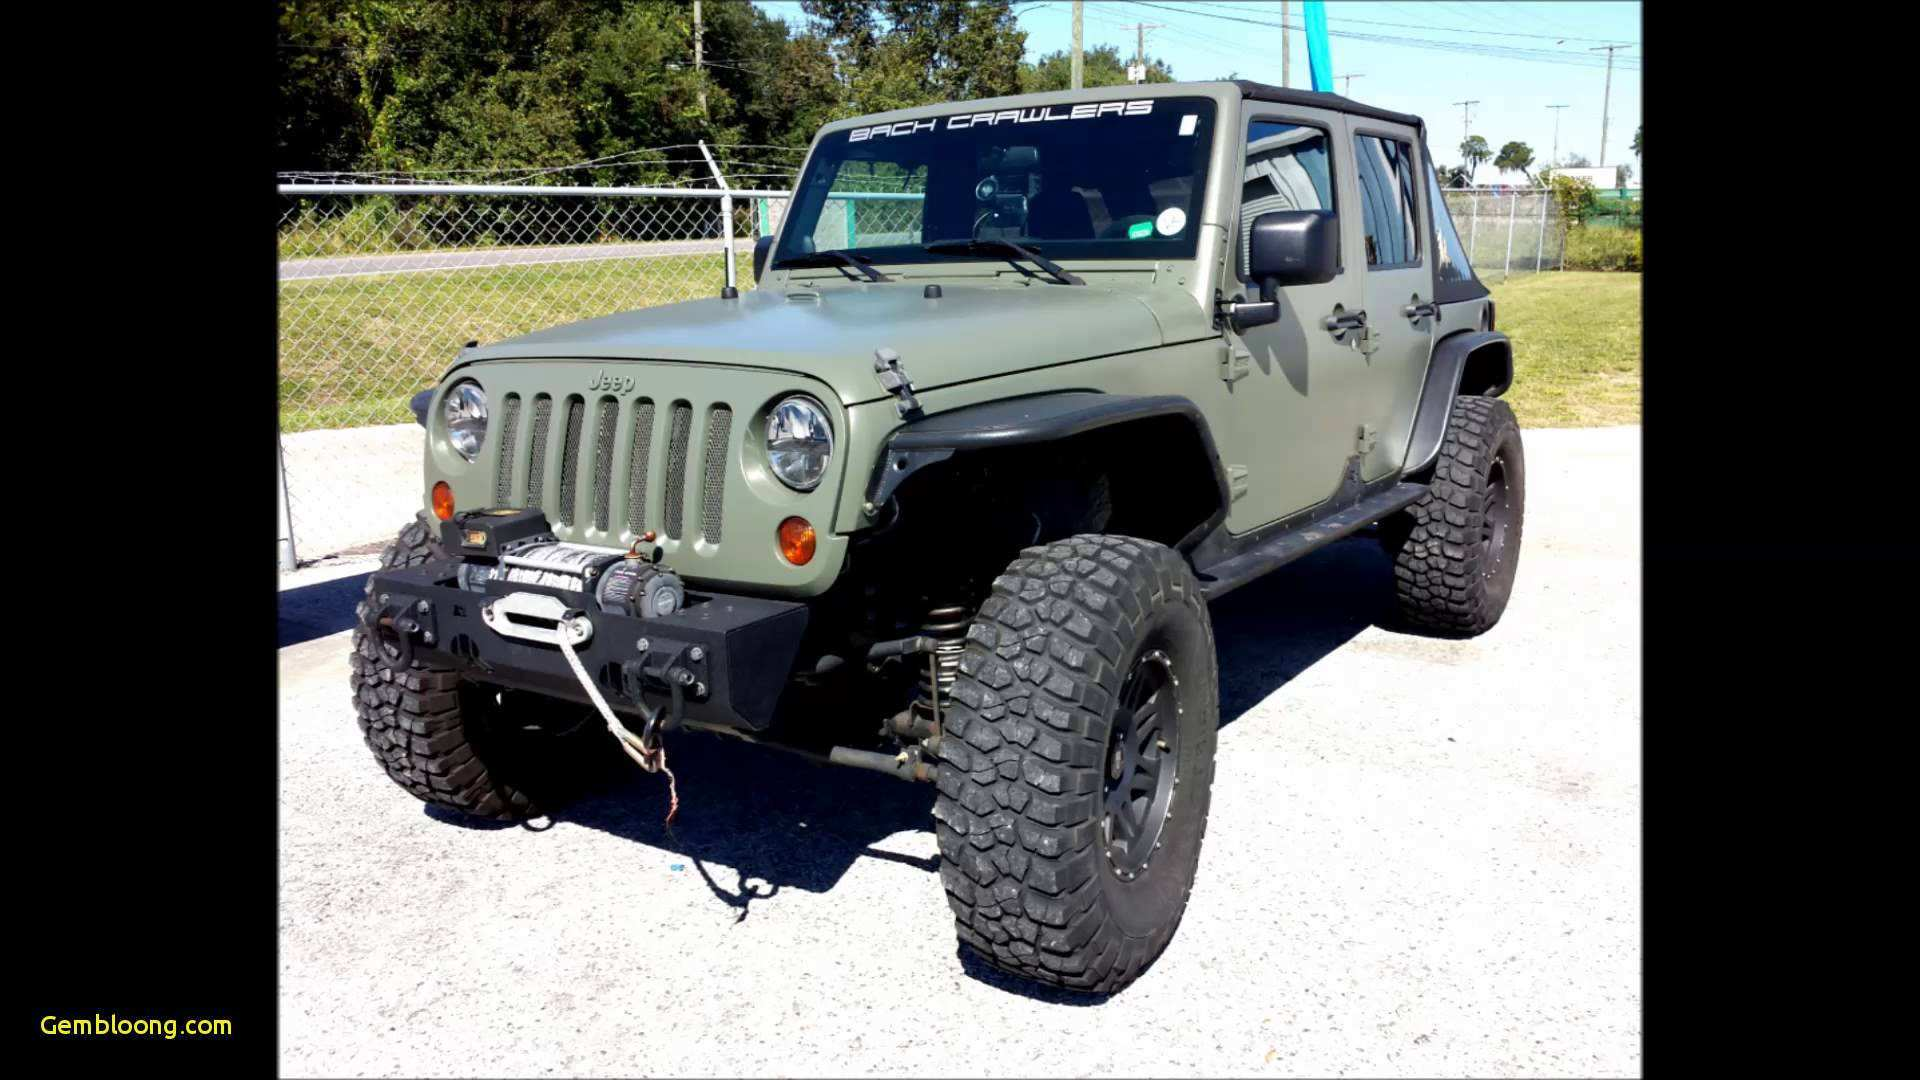 97 Best Review New Jeep 2019 Wrangler Colors Picture Release Date And Review Engine by New Jeep 2019 Wrangler Colors Picture Release Date And Review